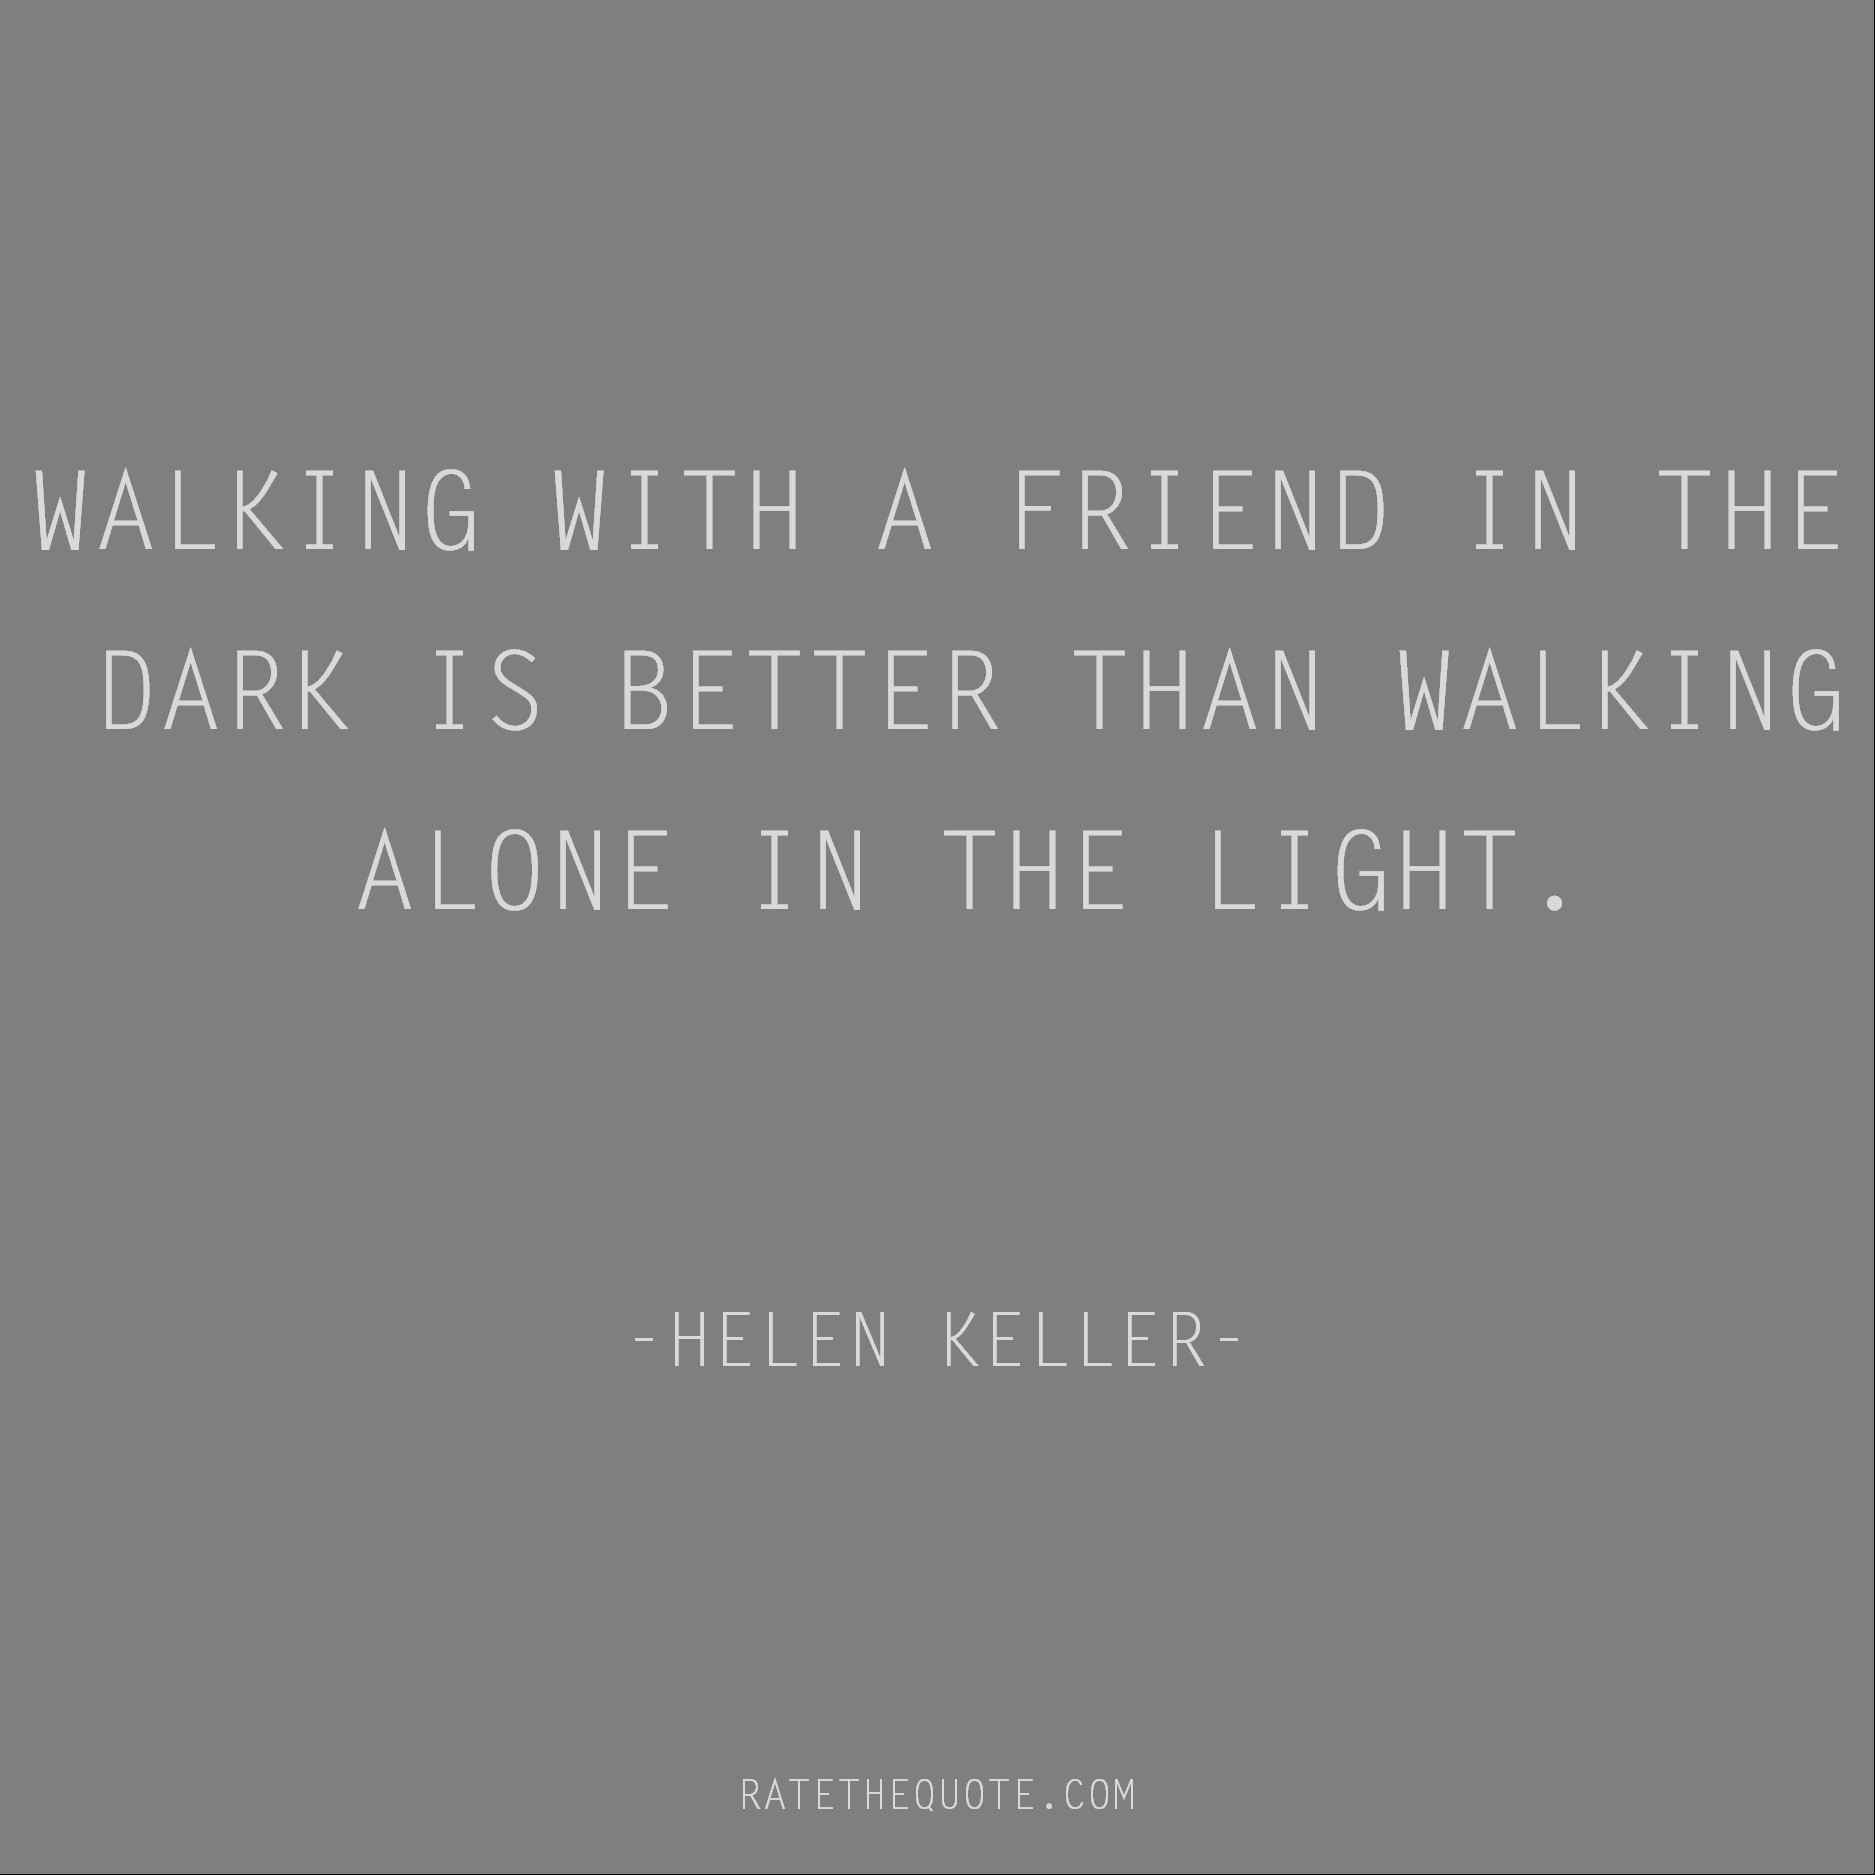 Friendship Quotes Walking with a friend in the dark is better than walking alone in the light. Helen Keller